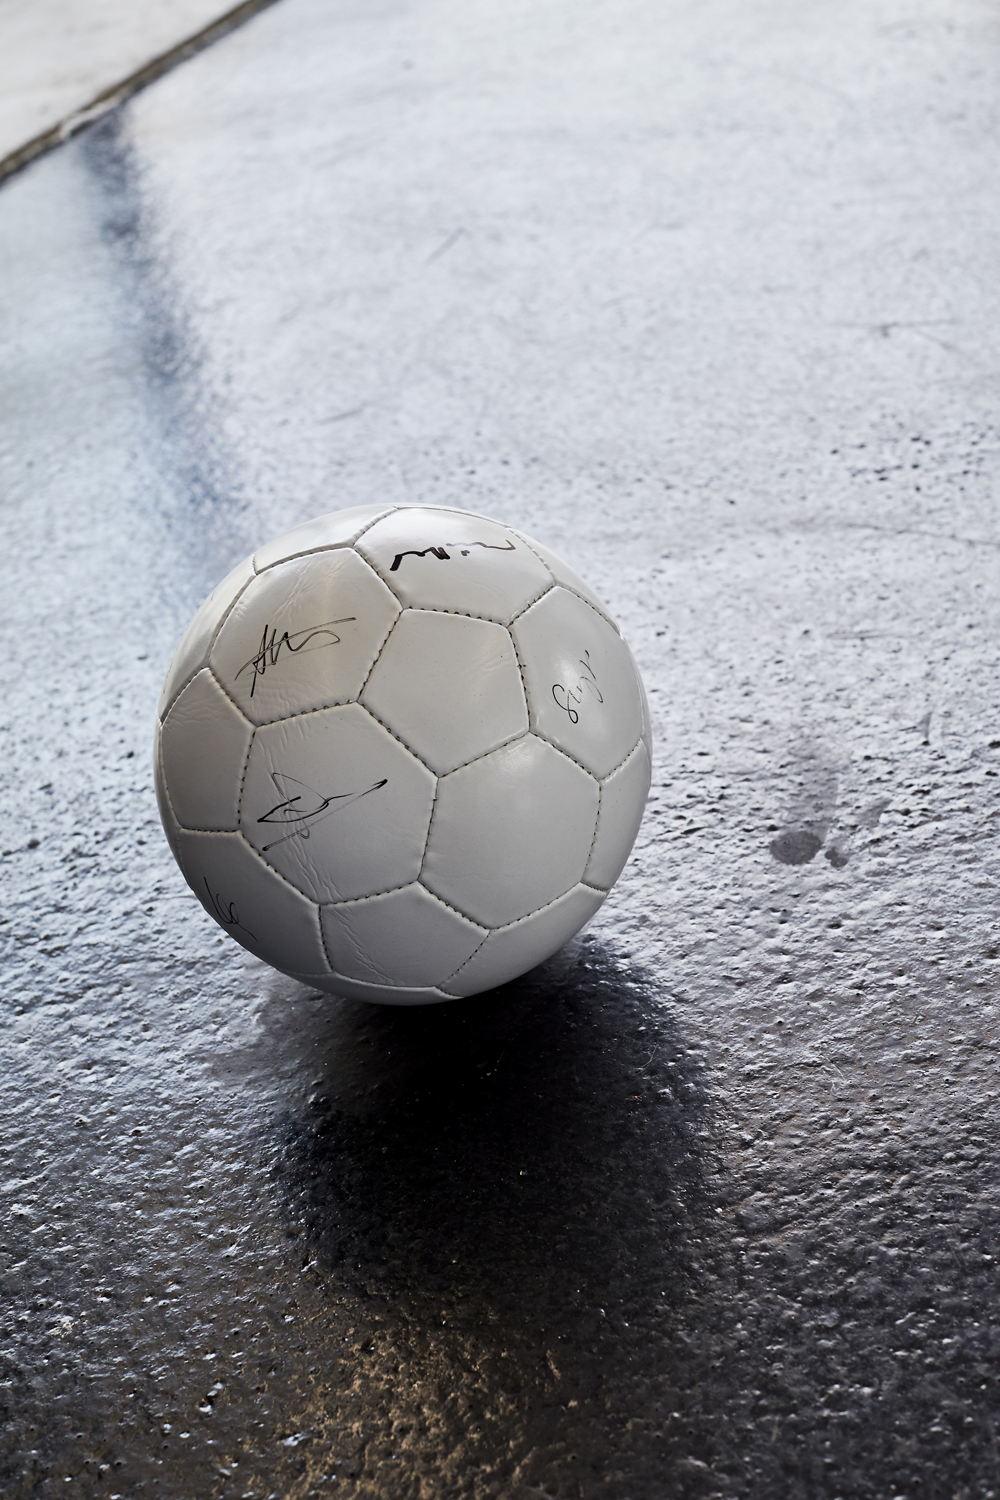 Joe Fletcher Orr, The Game V, 2016. Football signed by all artists in show and curators. Photographer Mark Niedermann.